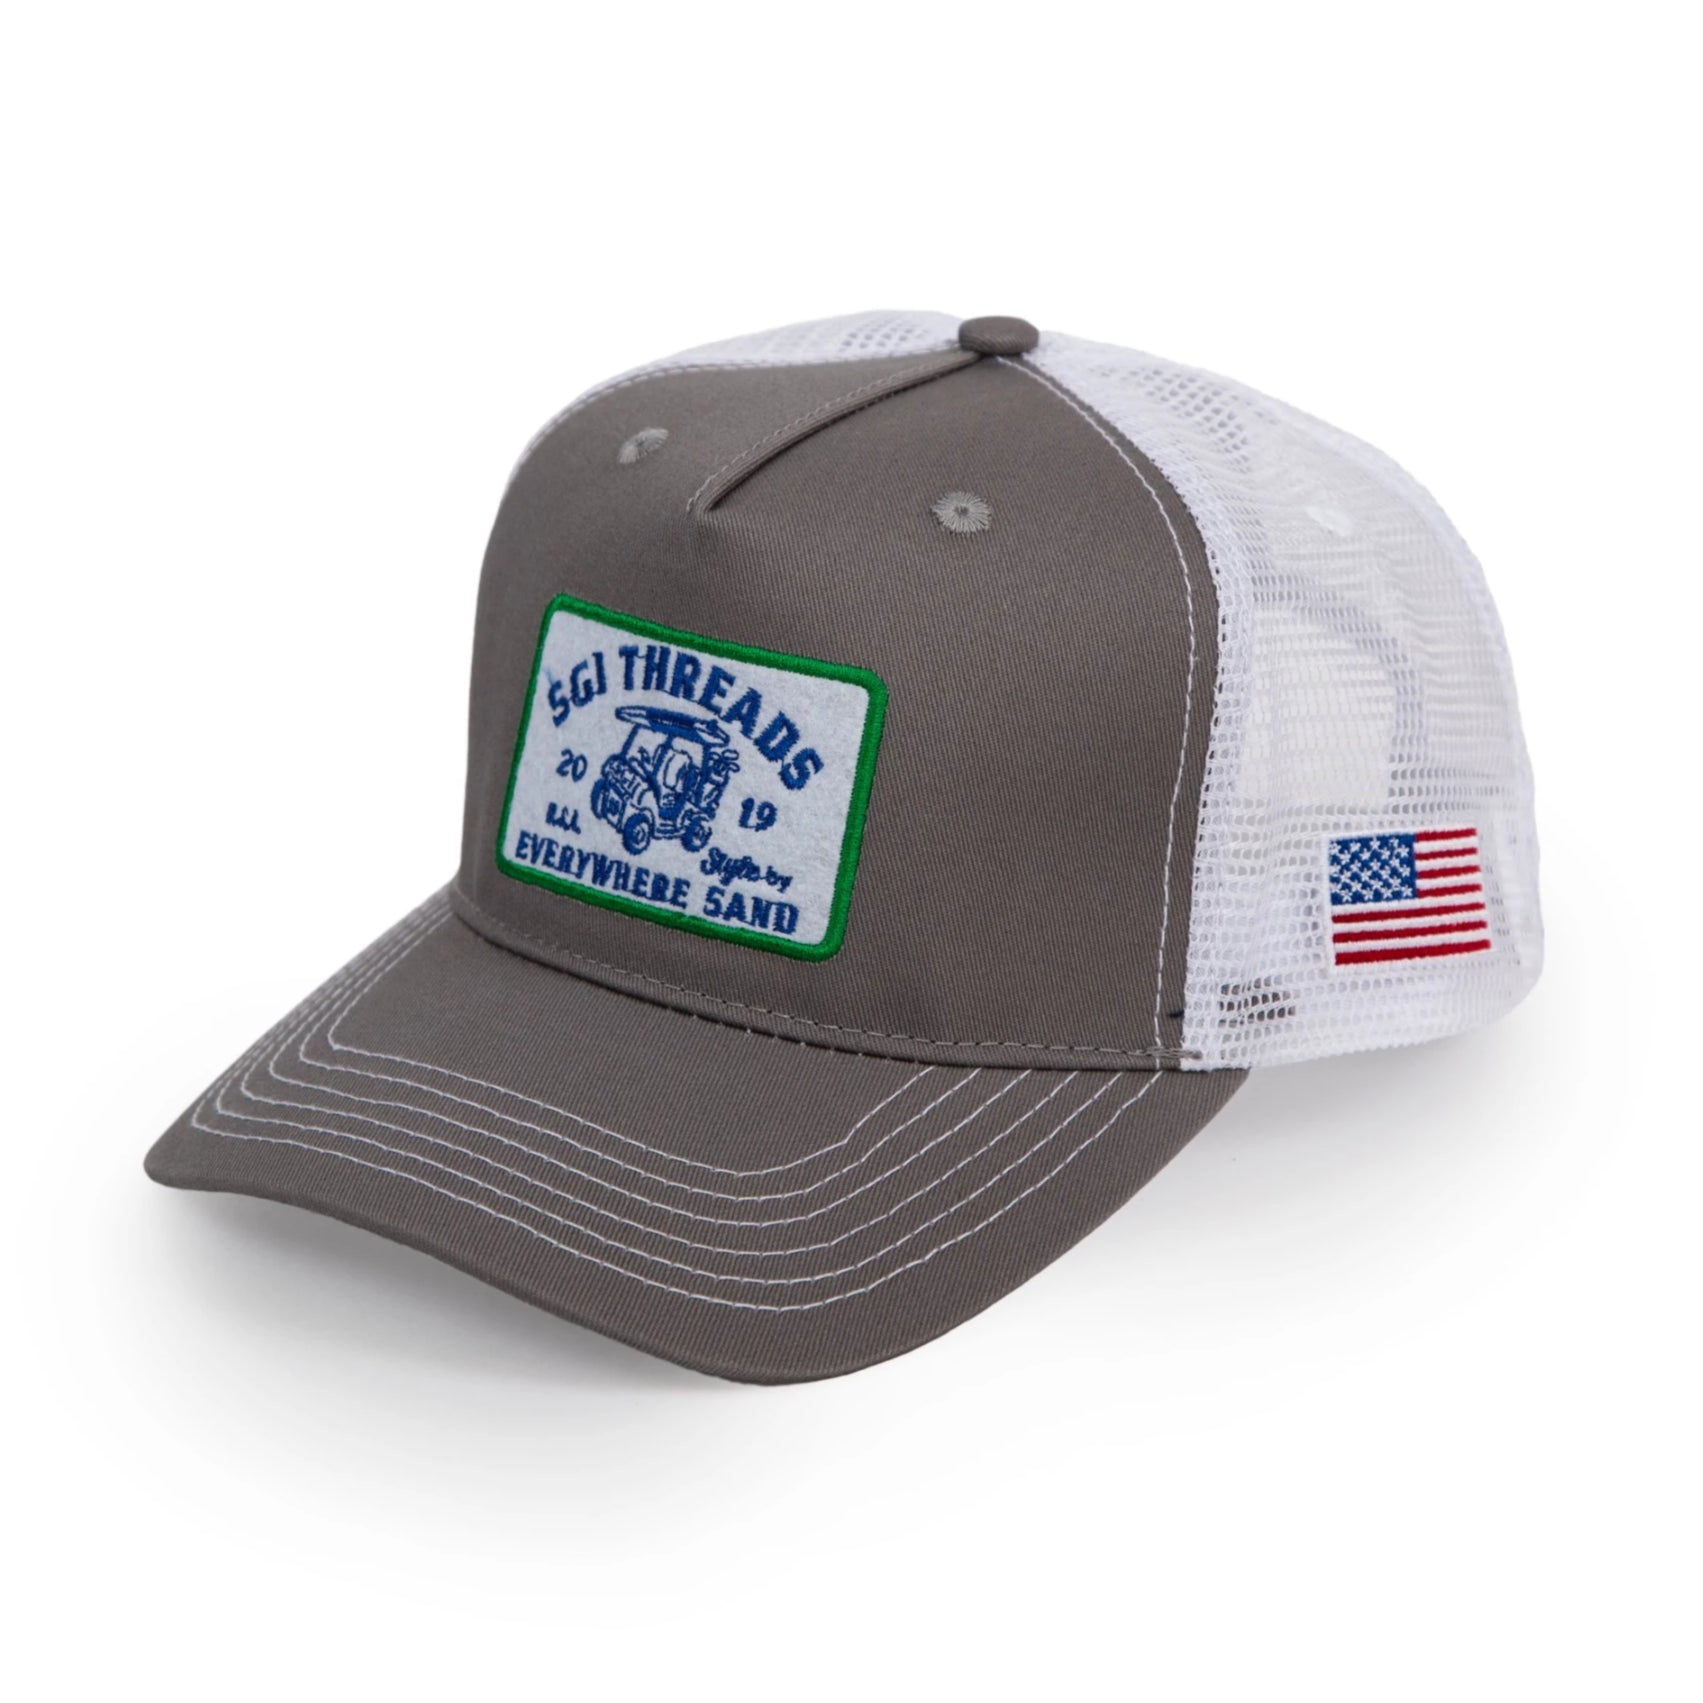 GOOD-TO-GO(LF) HAT HARBOR MIST